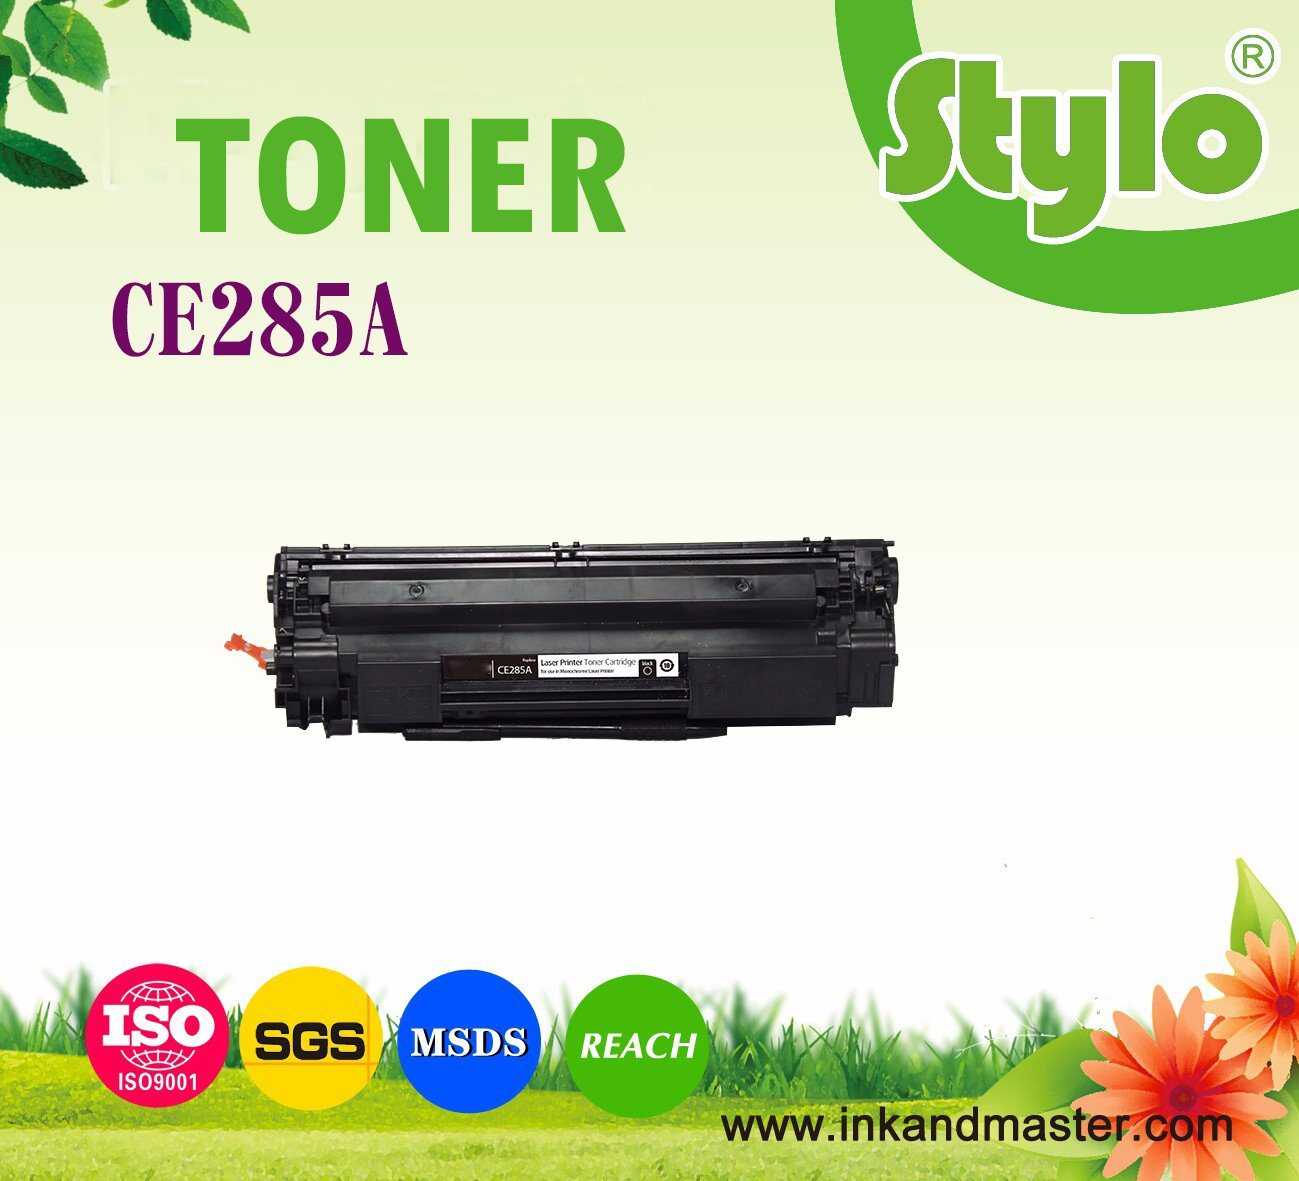 Ce285A, 85A, 285A, Laser Black Toner Cartridge for HP Laserjet Printer